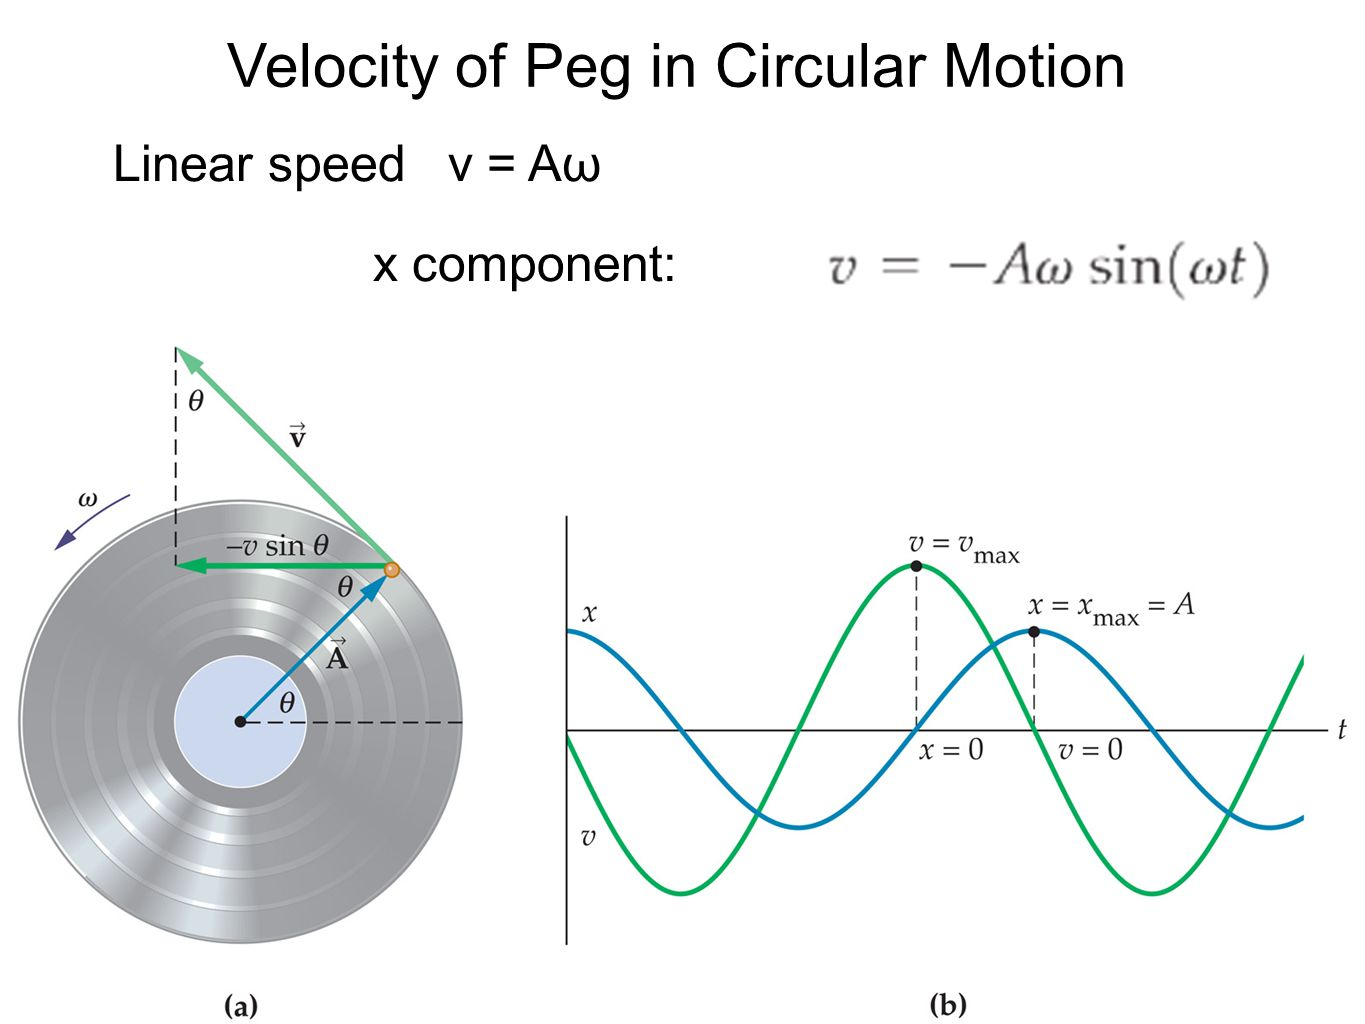 Velocity of Peg in Circular Motion